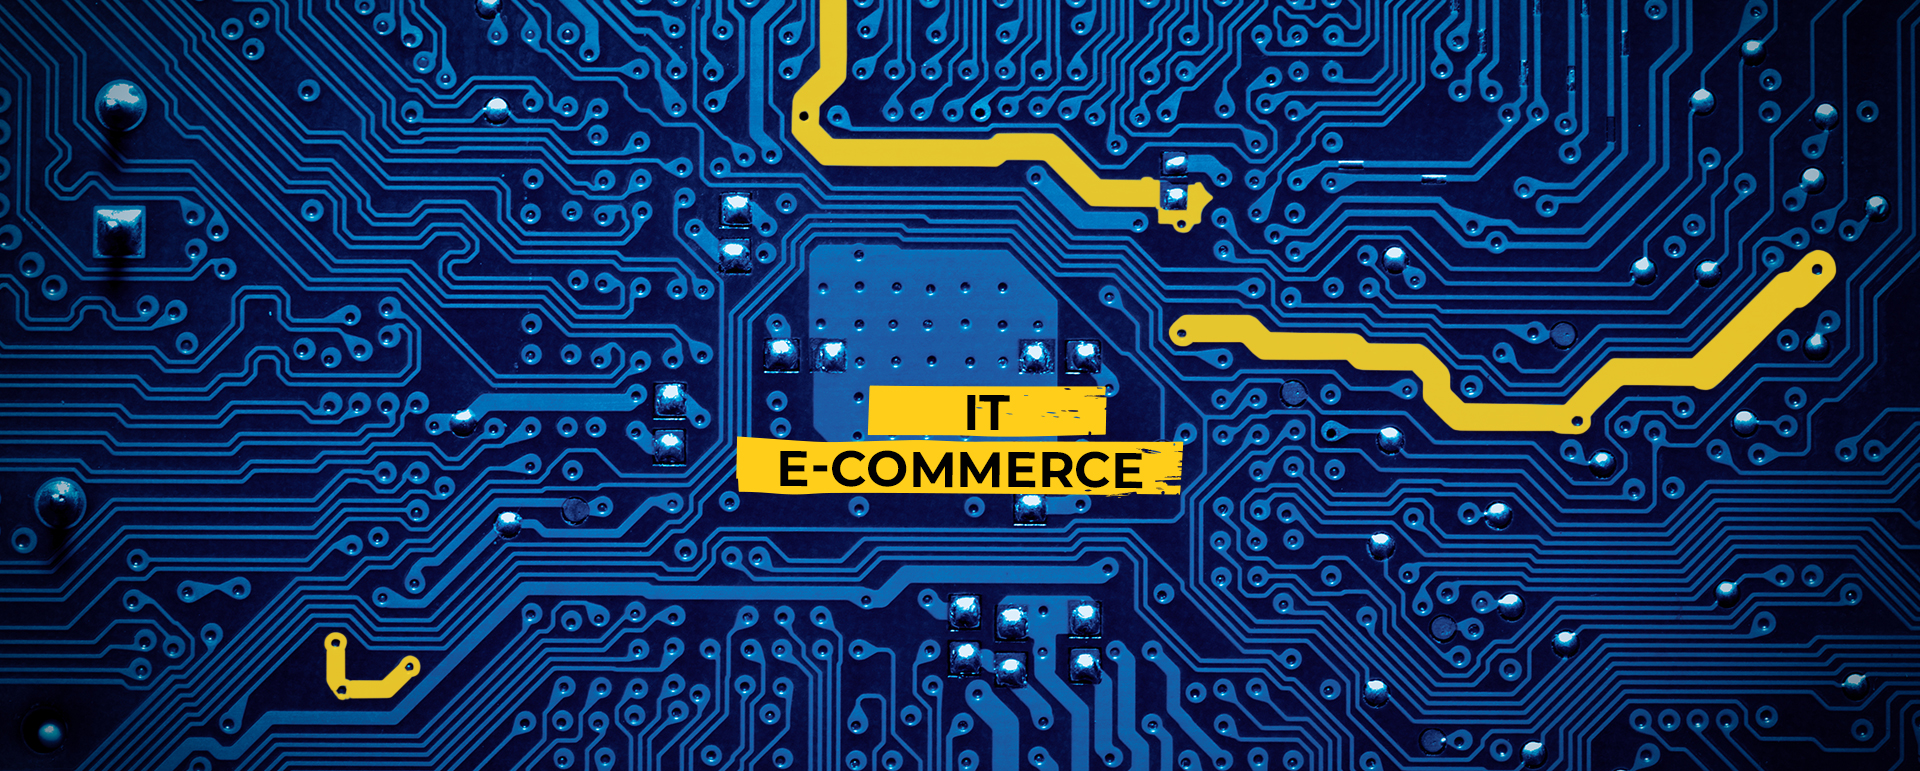 IT & E-commerce